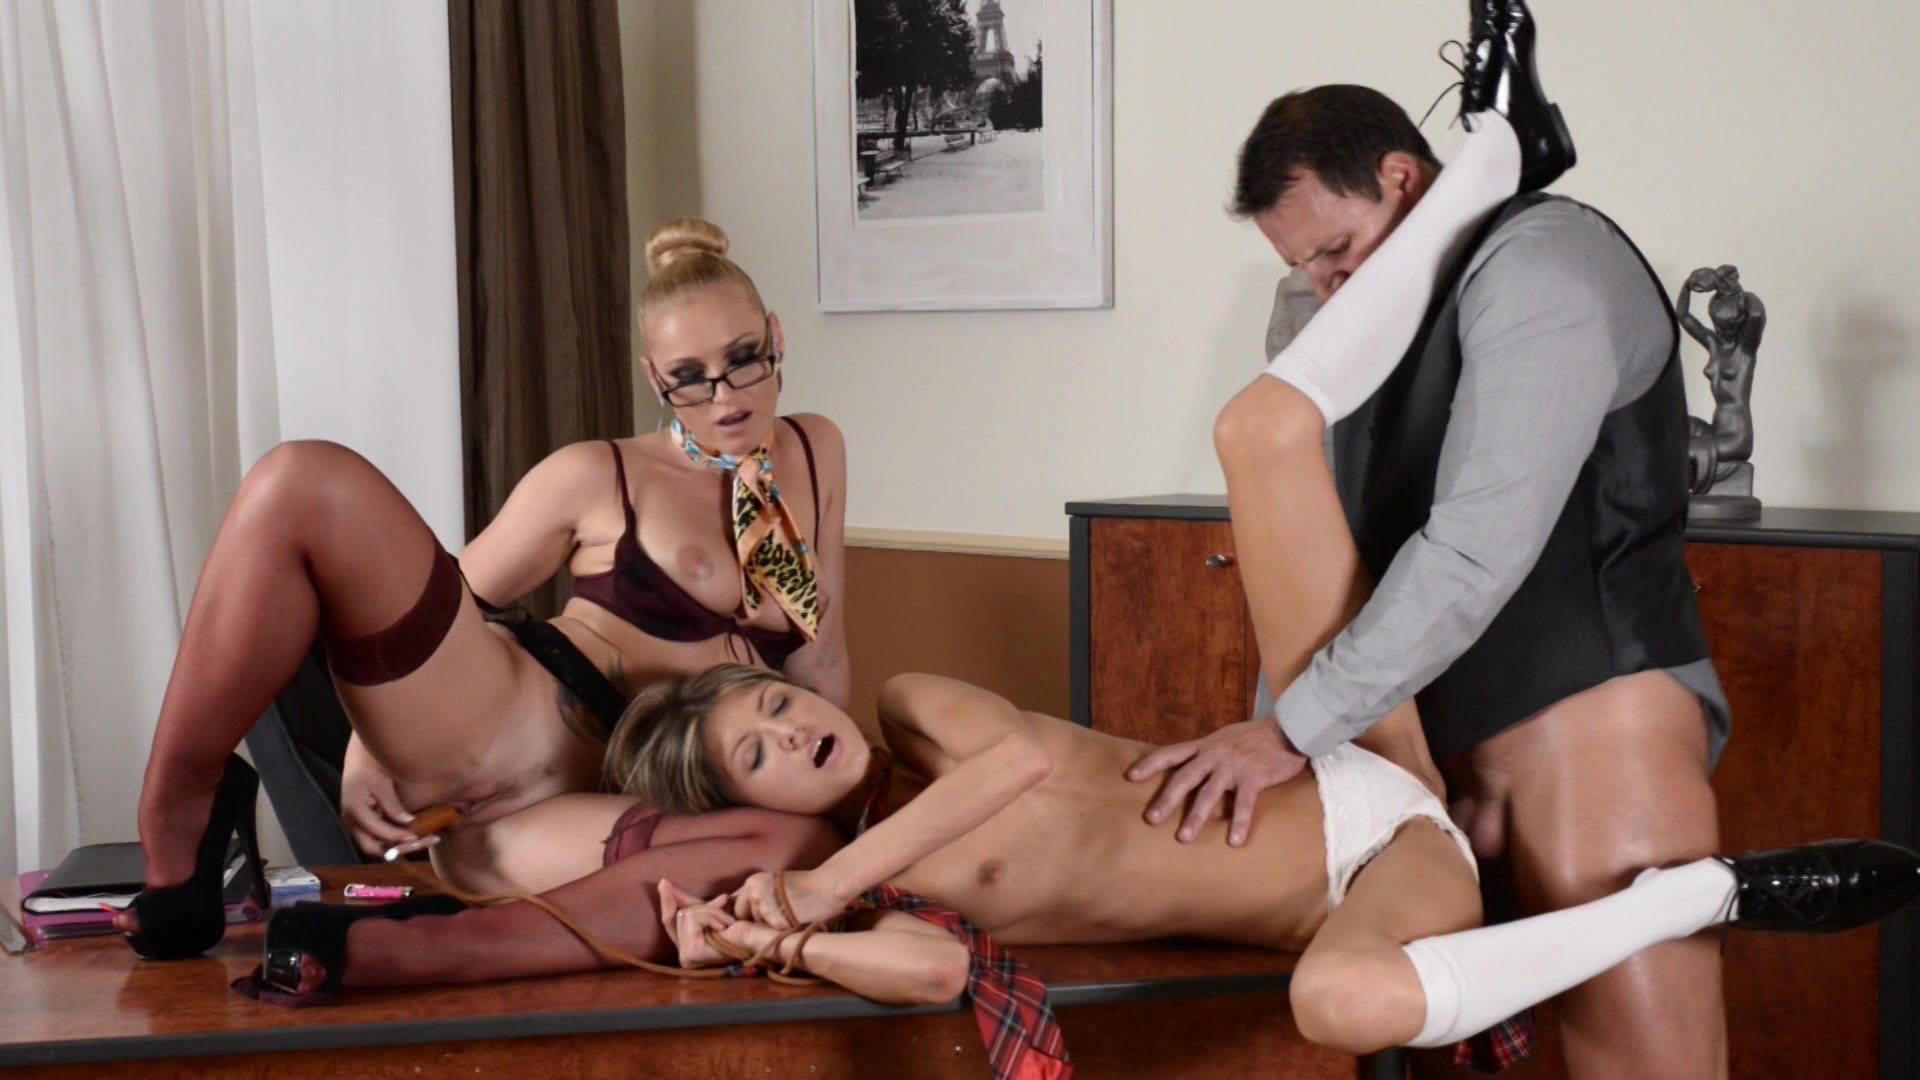 Naughty 3somes #3, Porn Movie, Explicit Empire, Naughty 3somes, Gina Gerson, Kathia Nobili, Emma Leigh, Anissa Kate, Abbie Cat, Laura Orsolya, Alessandra Jane, Macy, Aida Sweet, Lucy Heart, Adult DVD, All Sex, Threesomes